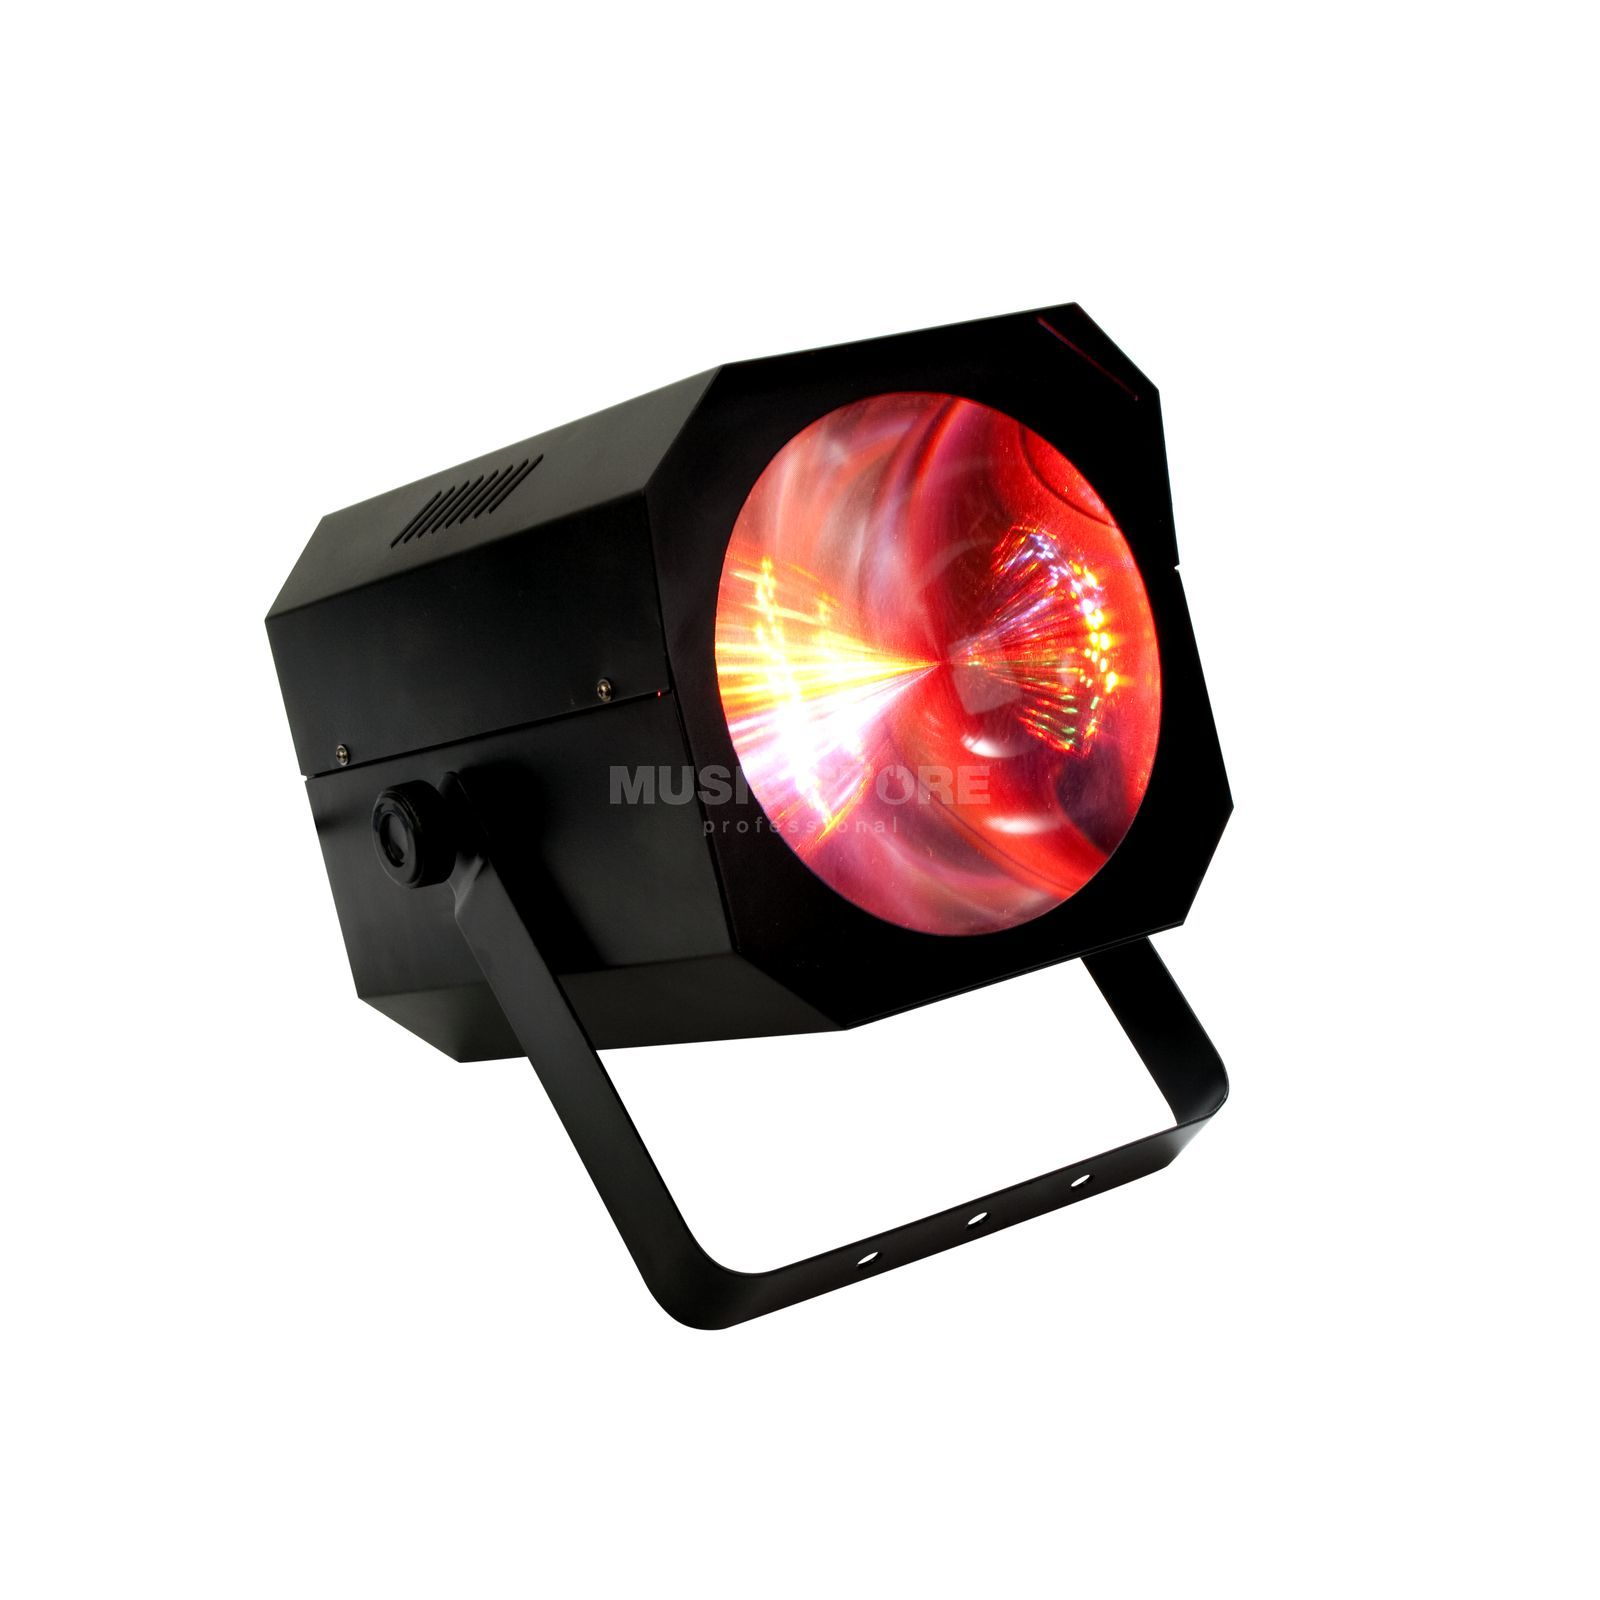 lightmaXX LED GUN I Pro LED Effect, 4 DMX Channels Product Image